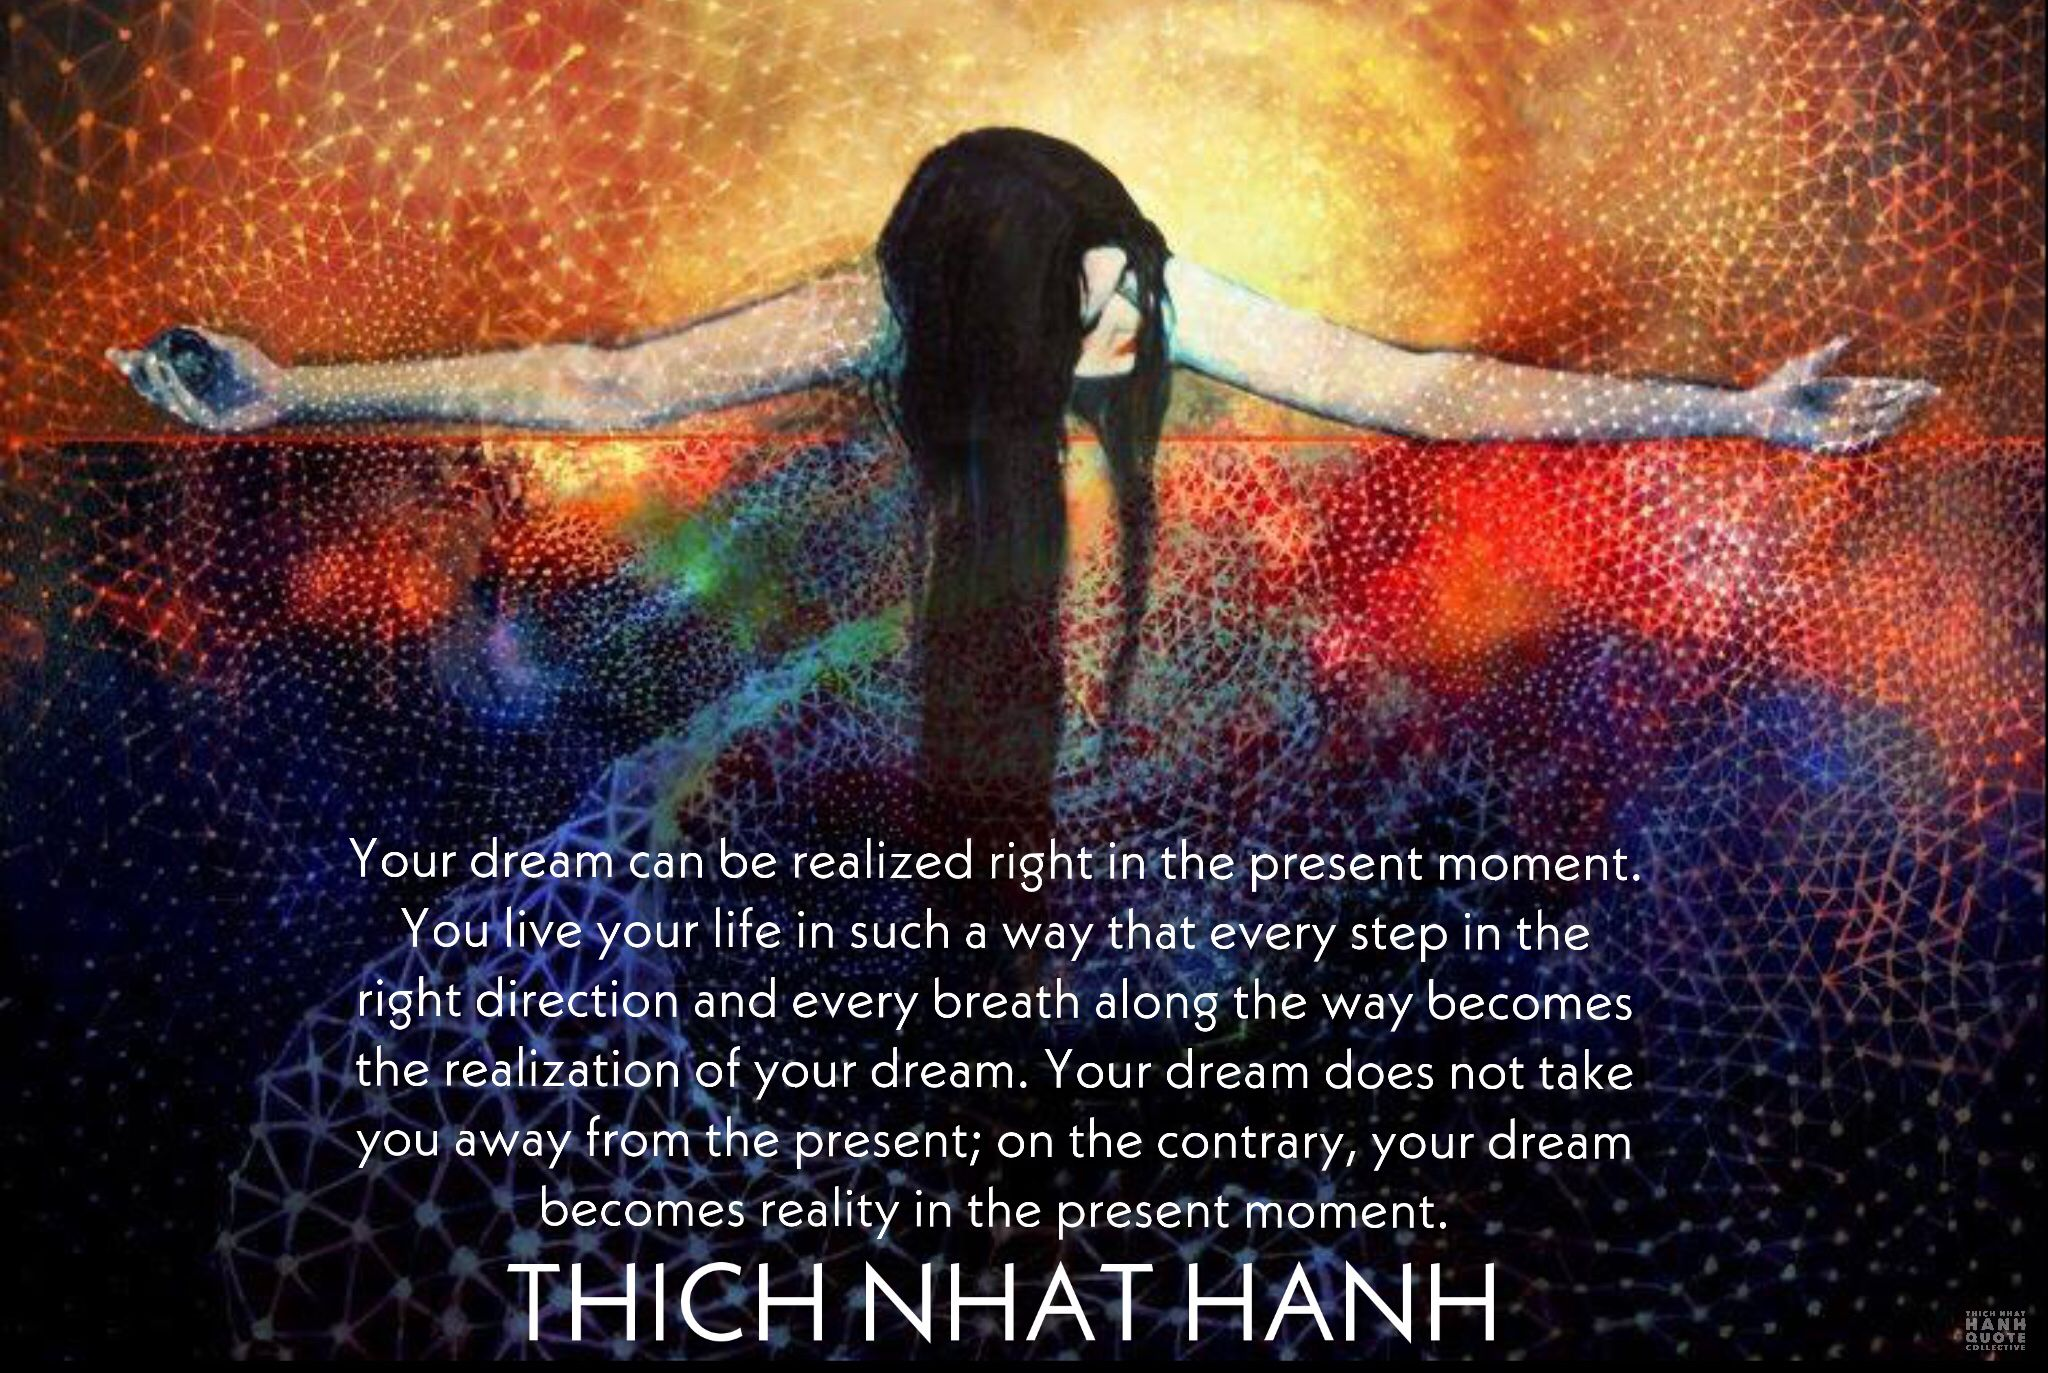 Realizing Your Dreams - Thich Nhat Hanh. | Dreaming of you, Thich nhat hanh  quotes, Thich nhat hanh